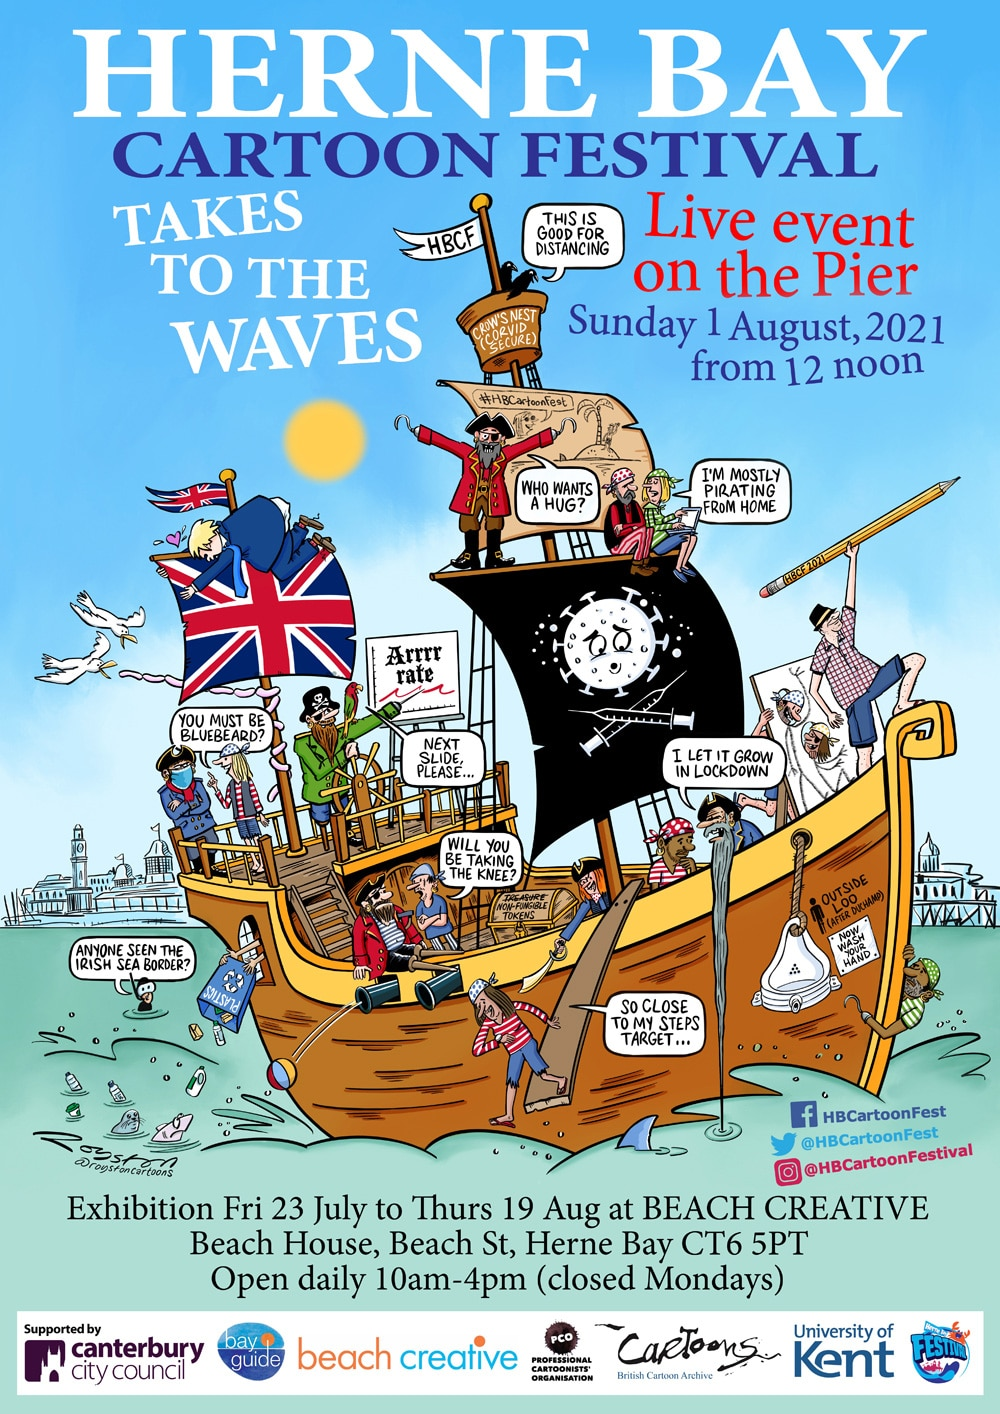 Herne Bay Cartoon Festival Takes To The Waves